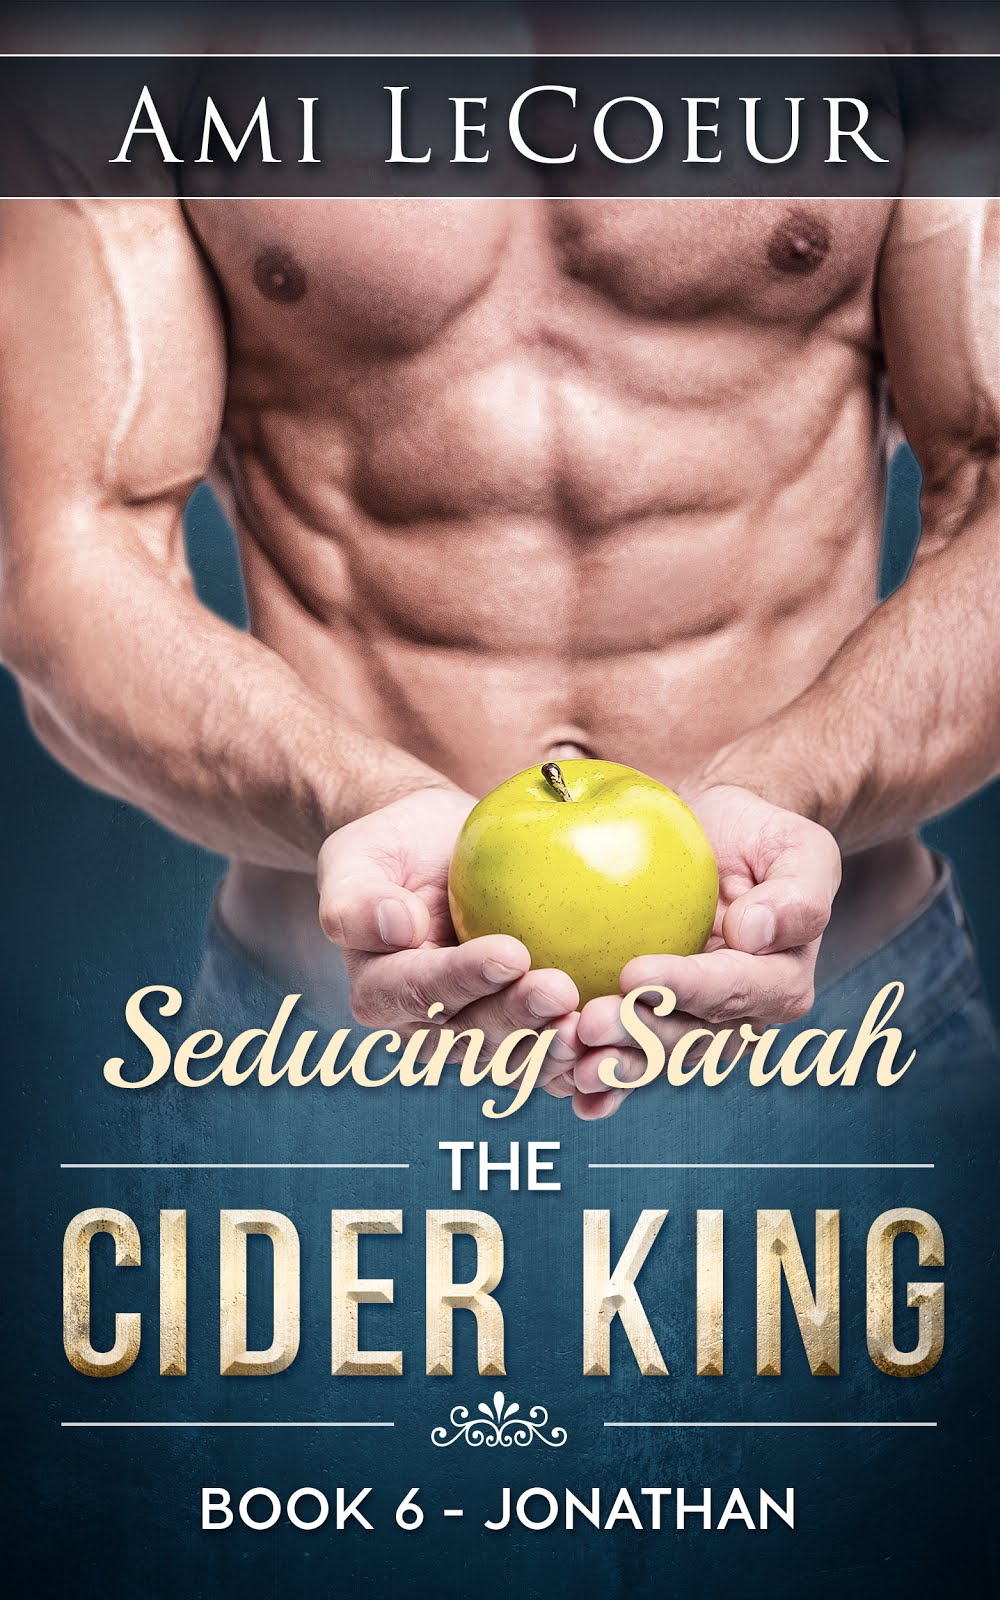 Seducing Sarah Book 6 - The Cider King: Jonathan